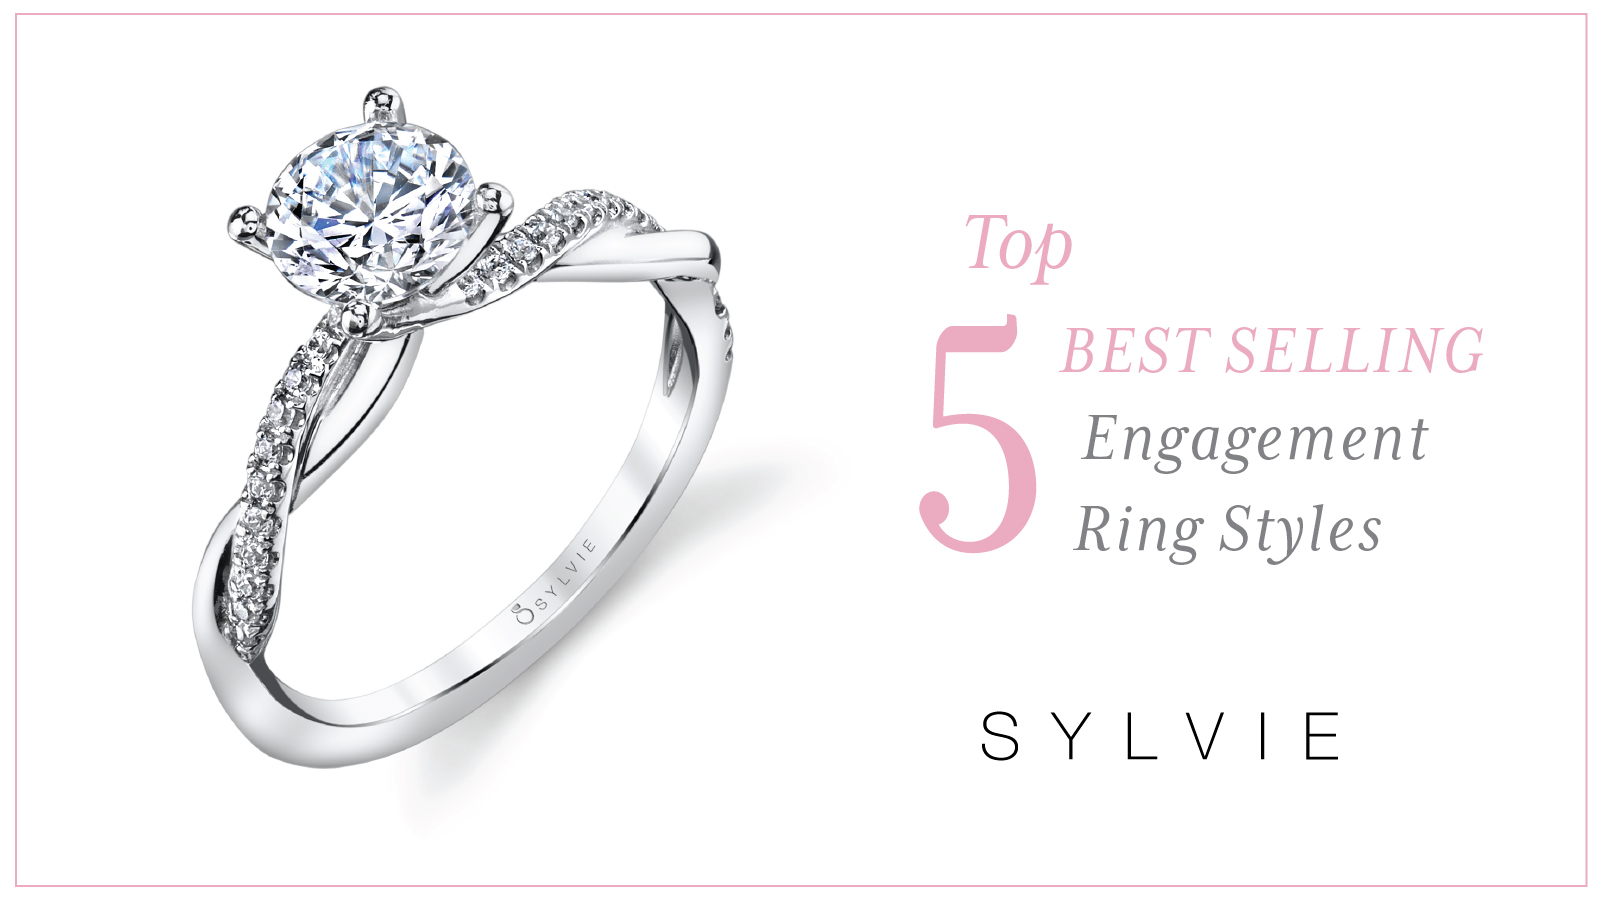 Top 5 Best Selling Engagement Ring Styles